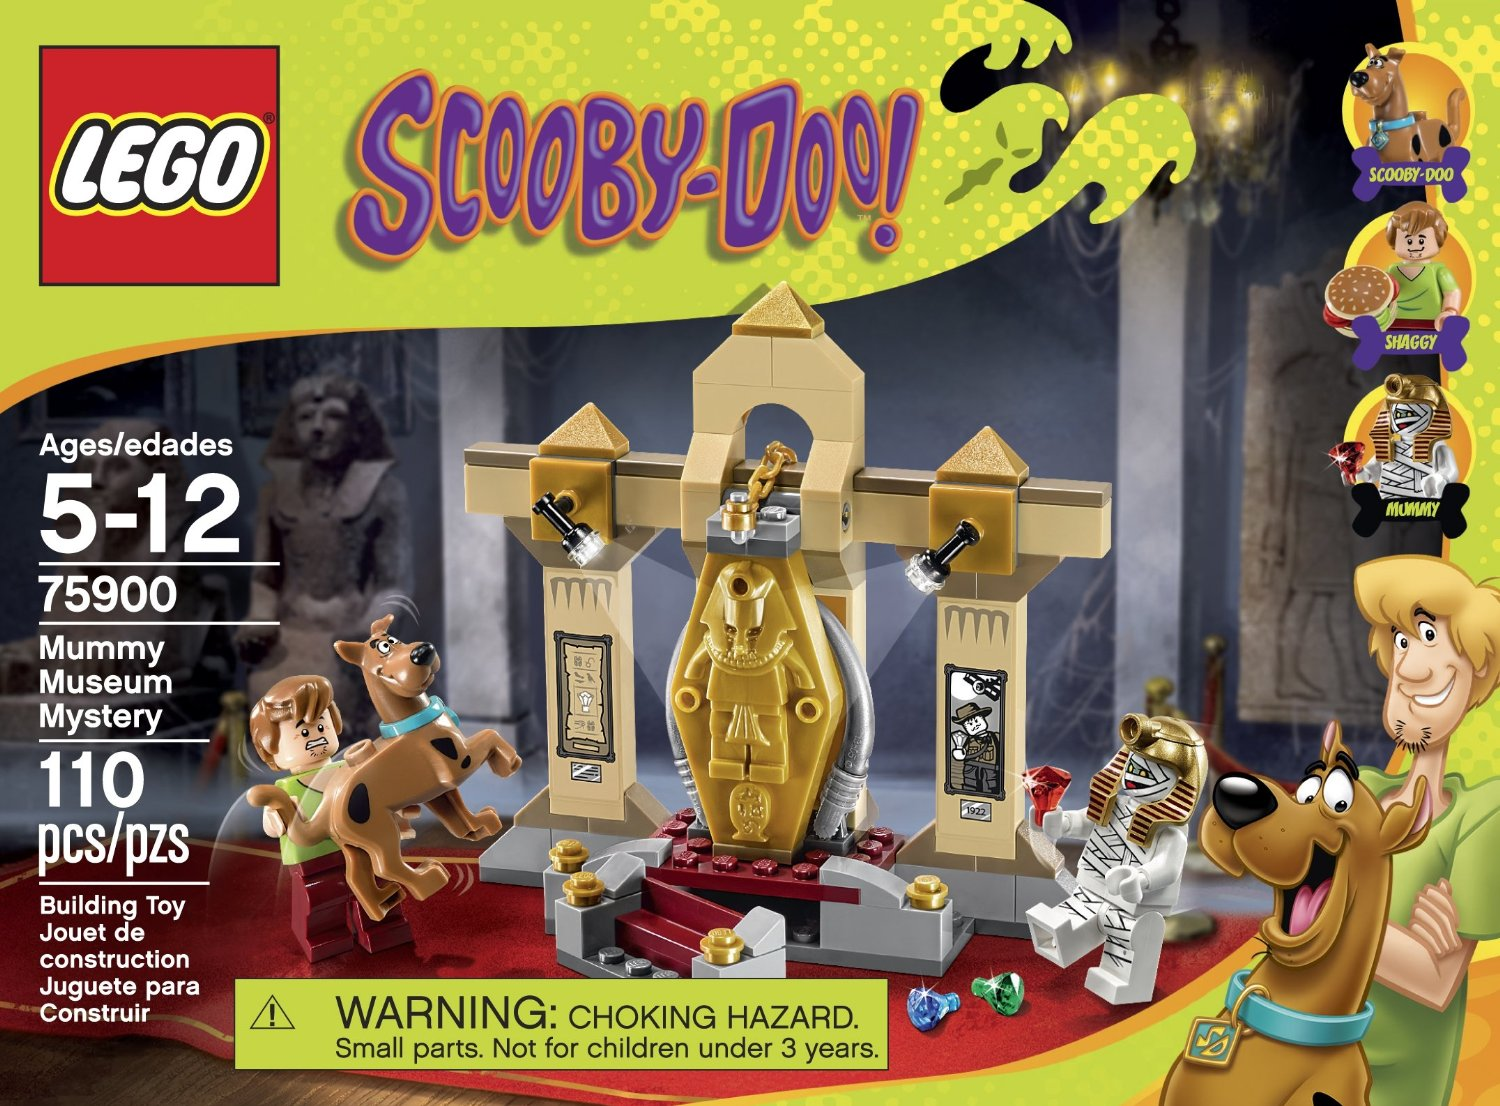 The Minifigure Collector Lego Scooby Doo